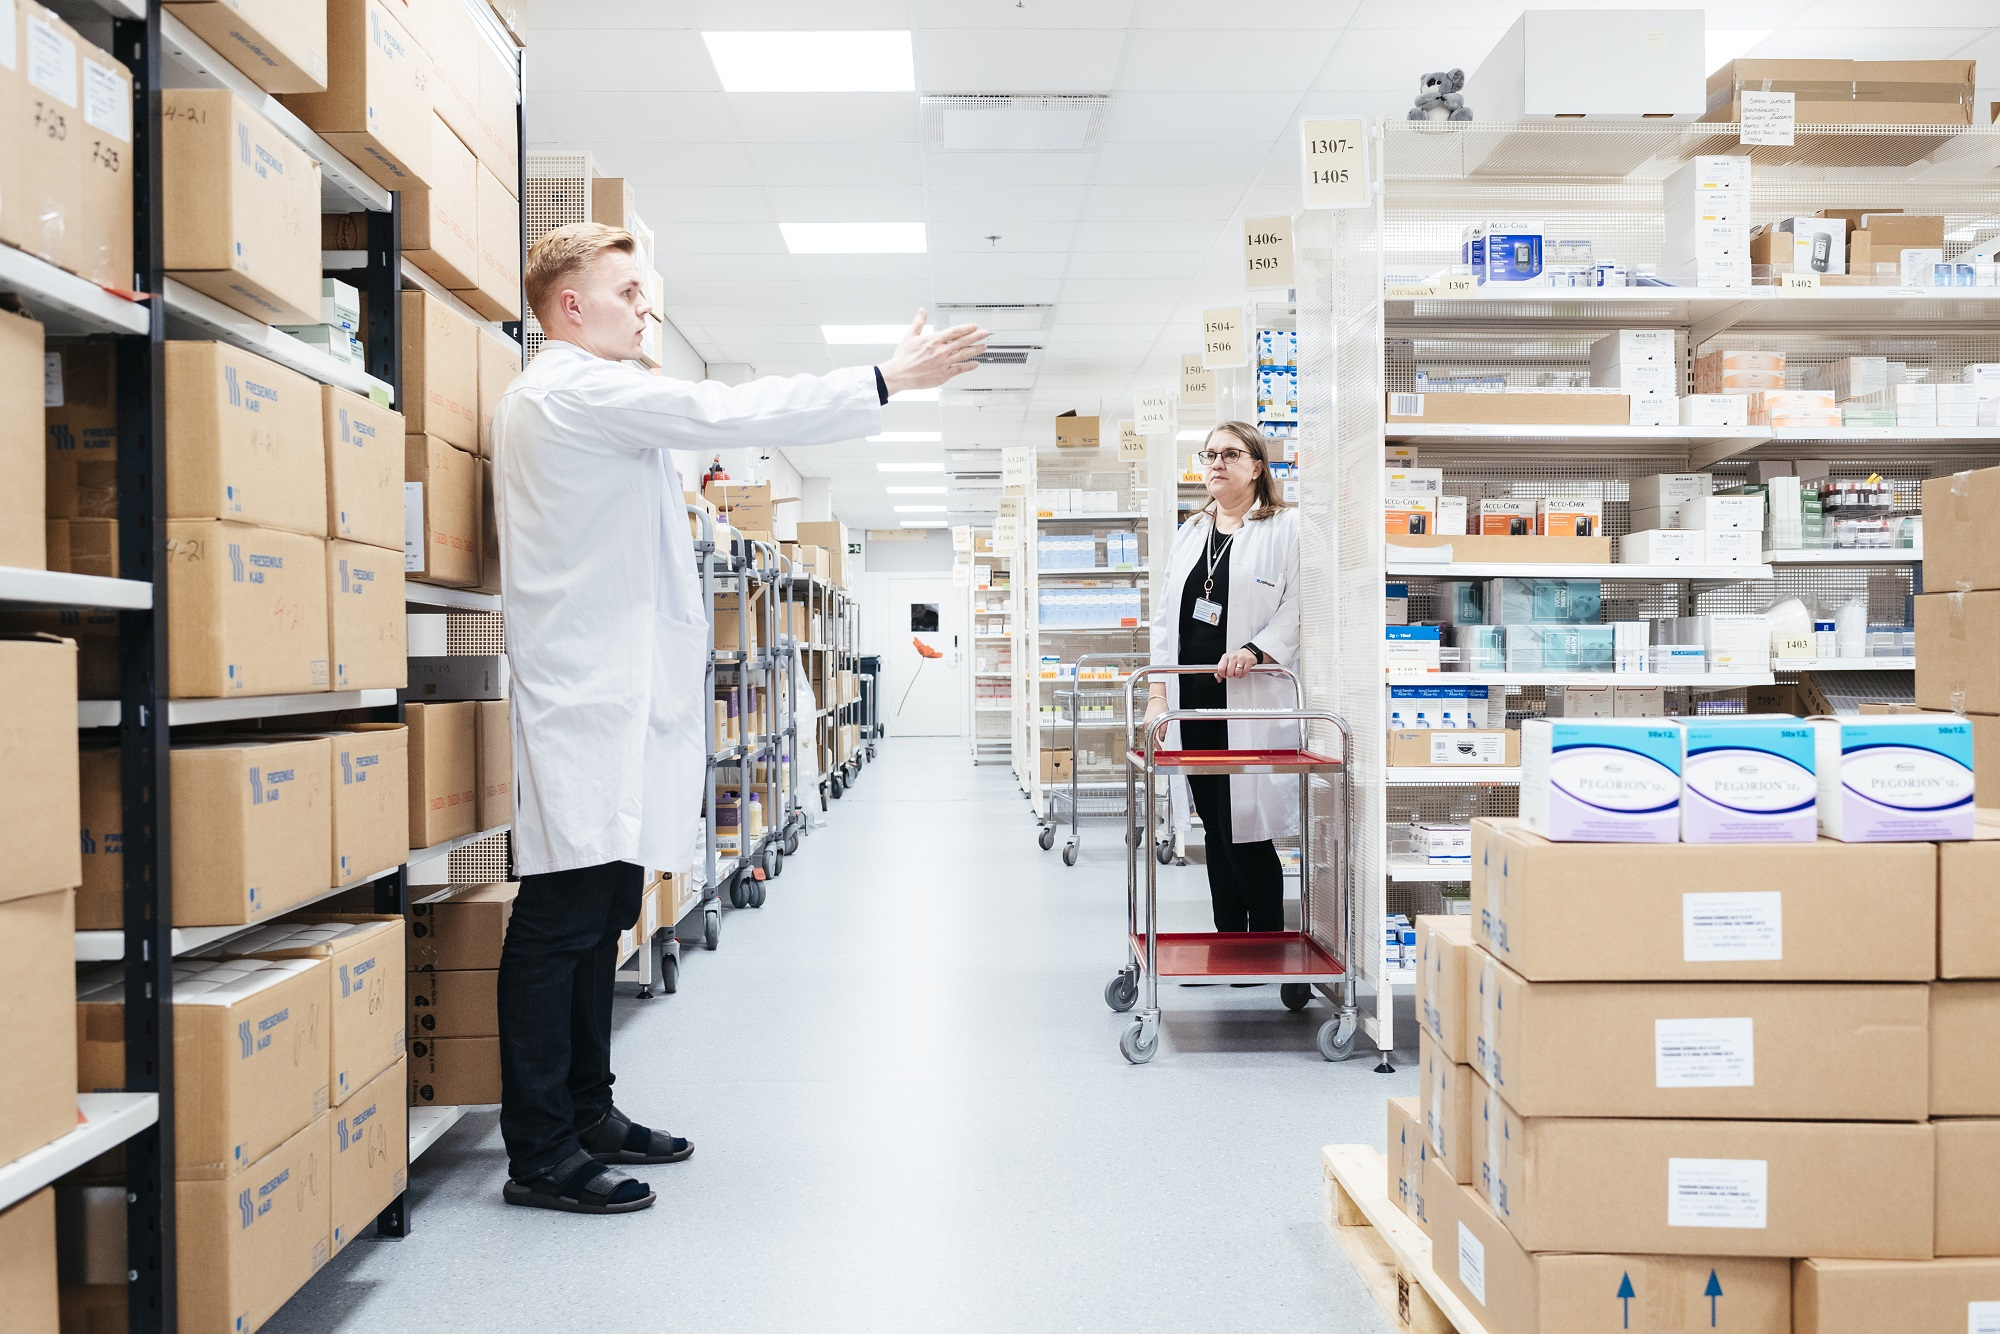 Tampere University Hospital to obtain the world's largest automated dispensing system: Acquisition based on safety, efficiency and reliability of medicine supply